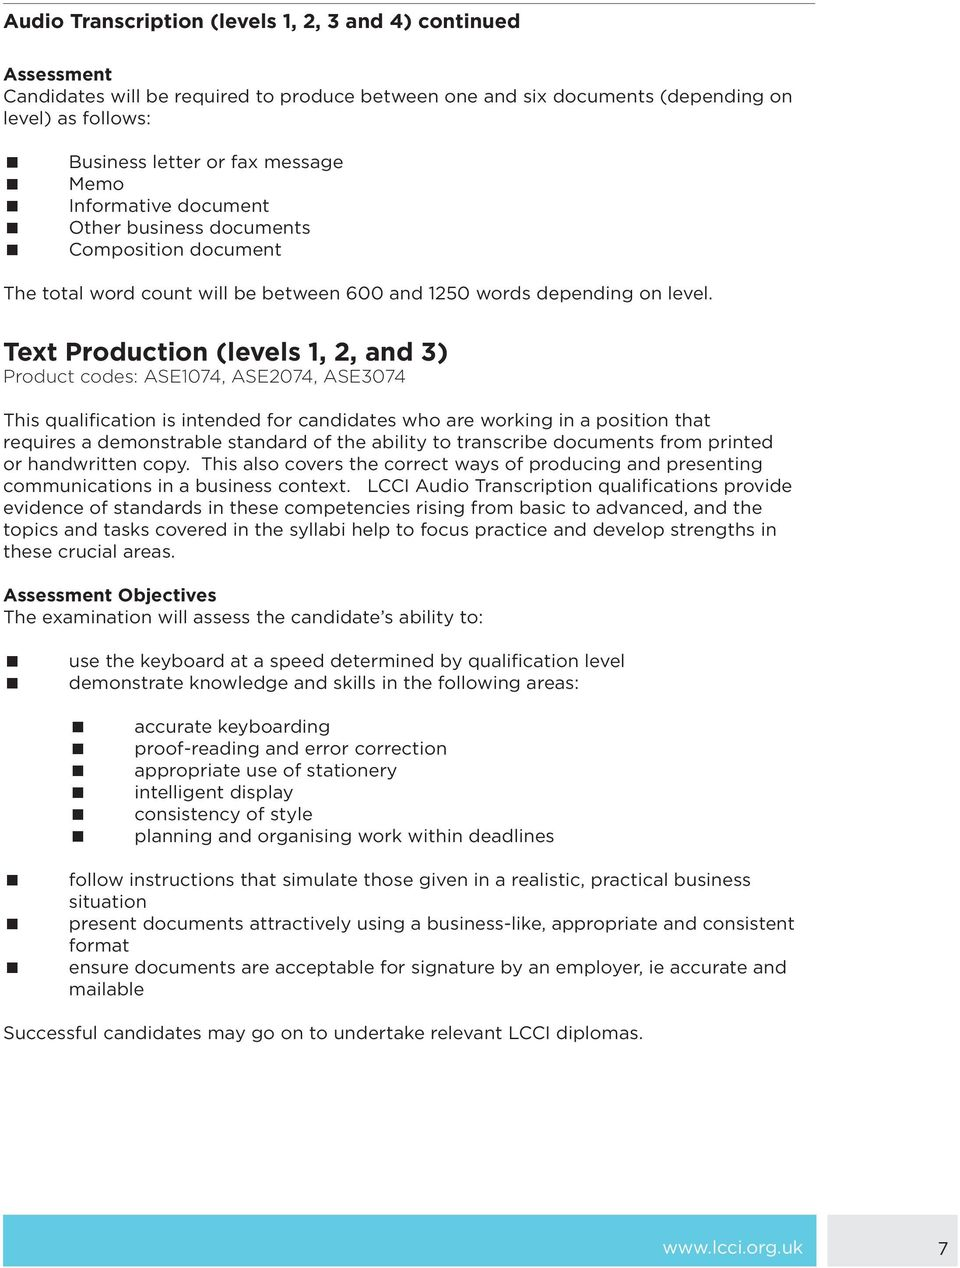 Text Production (levels 1, 2, and 3) Product codes: ASE1074, ASE2074, ASE3074 This qualification is intended for candidates who are working in a position that requires a demonstrable standard of the